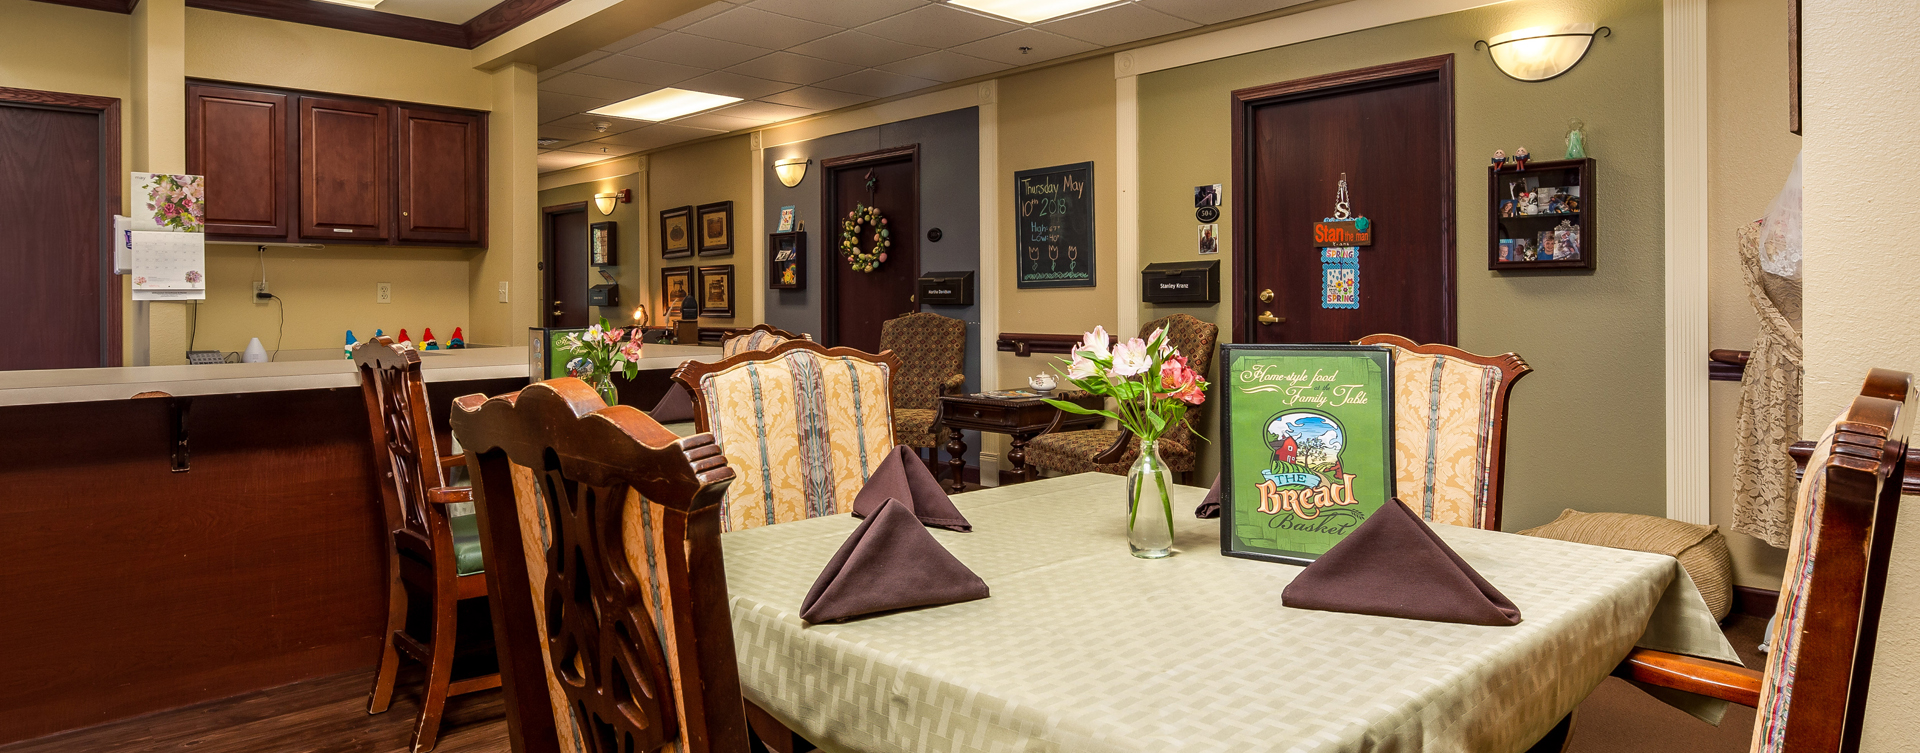 Residents with dementia receive additional assistance with meals in our Mary B's dining room at Bickford of Okemos